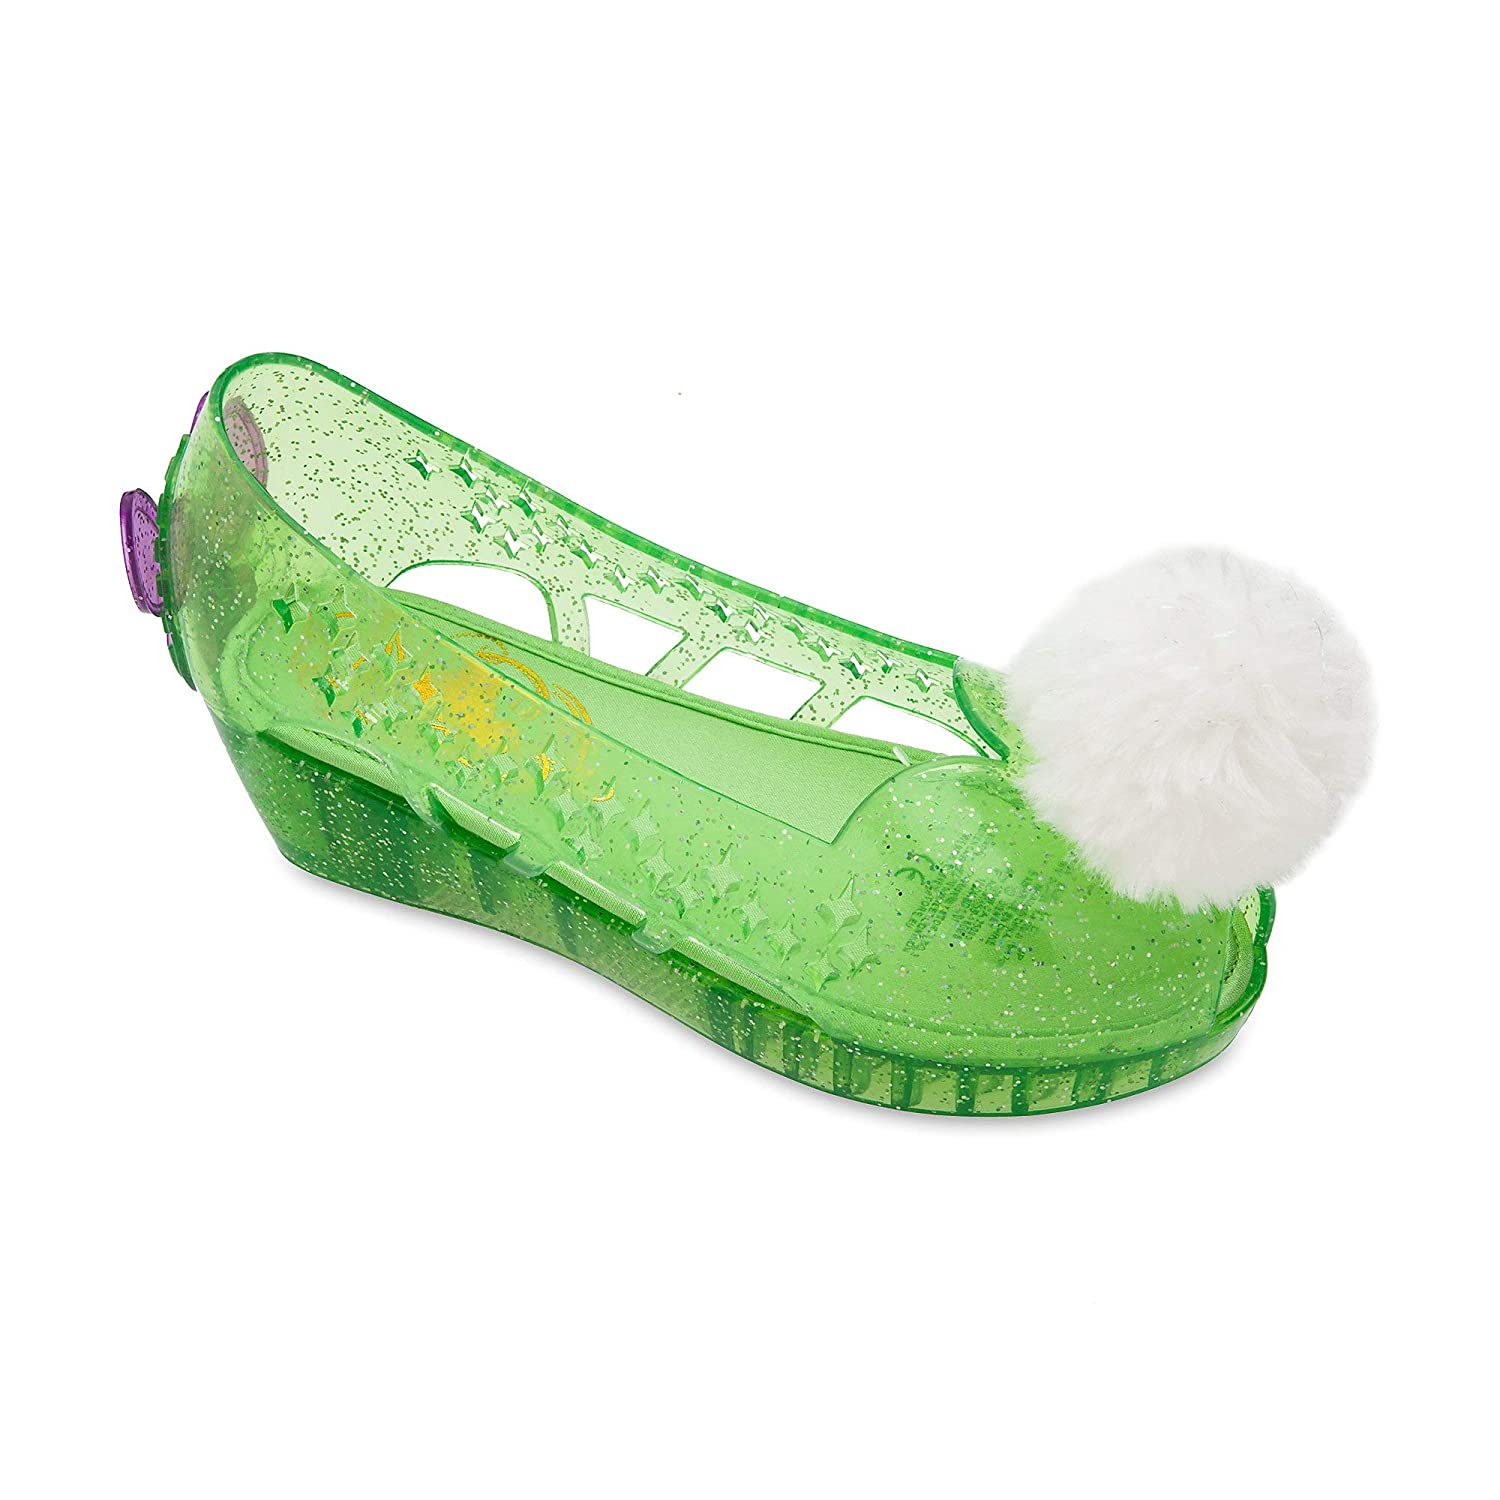 Disney Tinker Bell Glow in The Dark Shoes for Kids Green